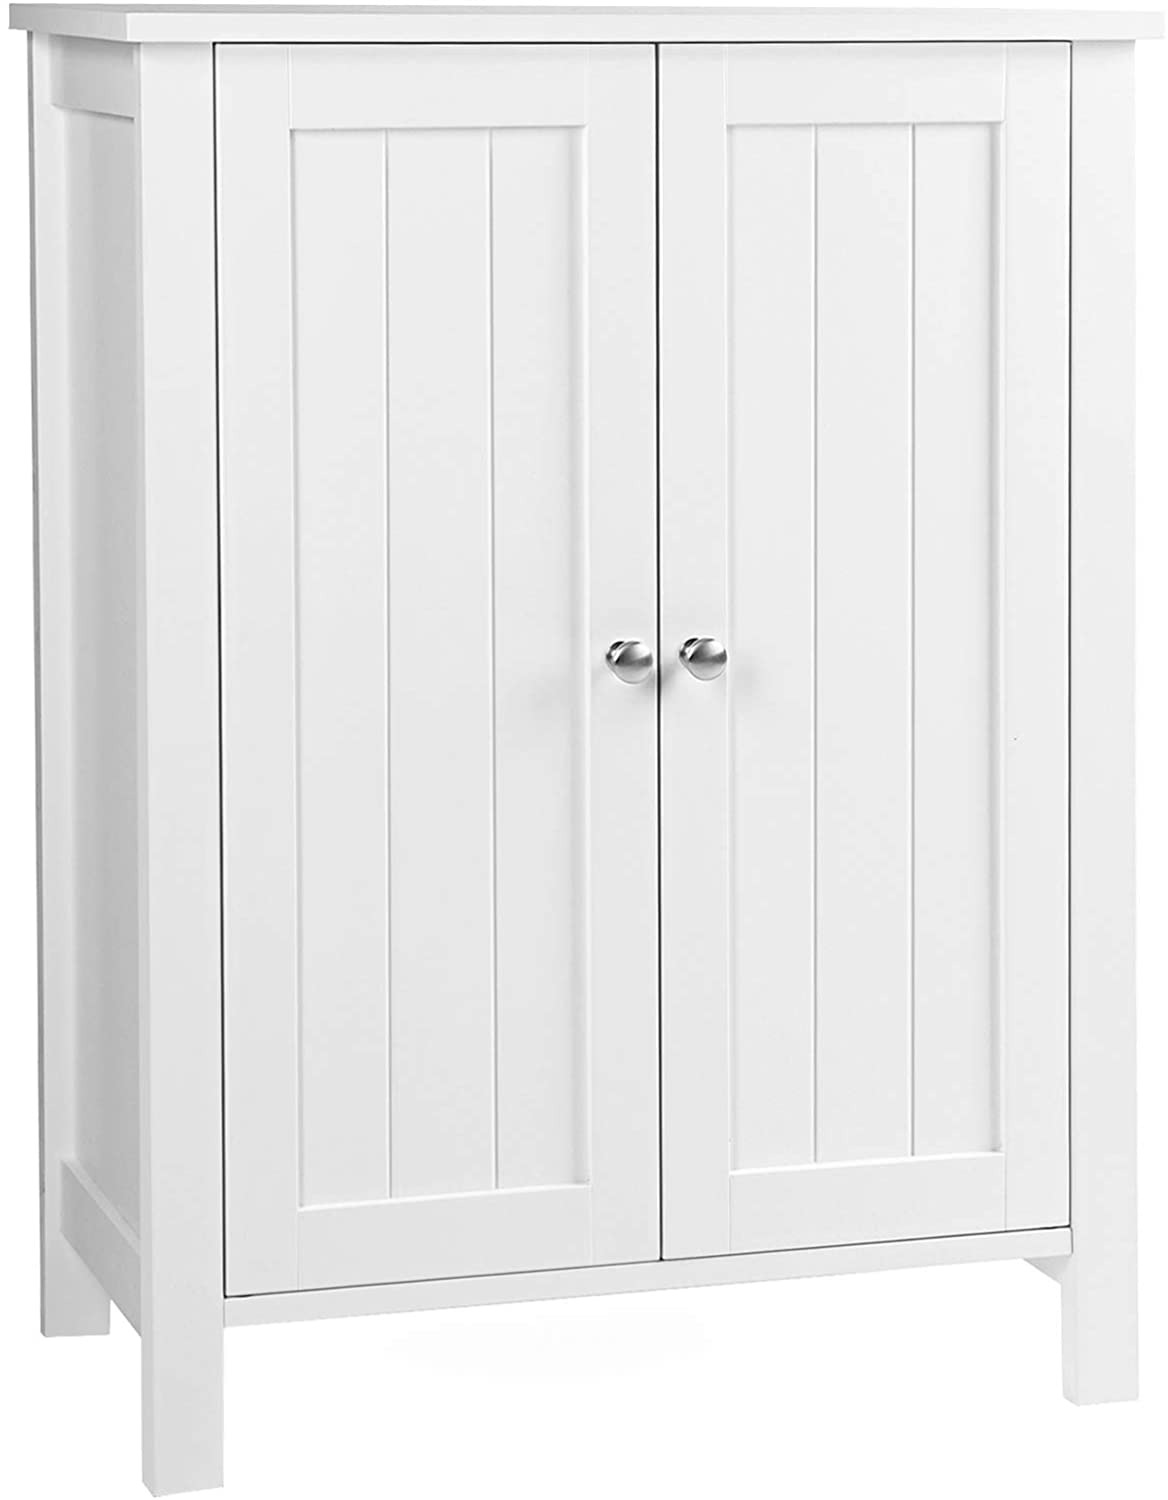 White Storage Cabinet with Doors New Vasagle Freestanding Bathroom Cabinet Storage Cupboard Unit with 2 Doors and 2 Adjustable Shelves White Bcb60w